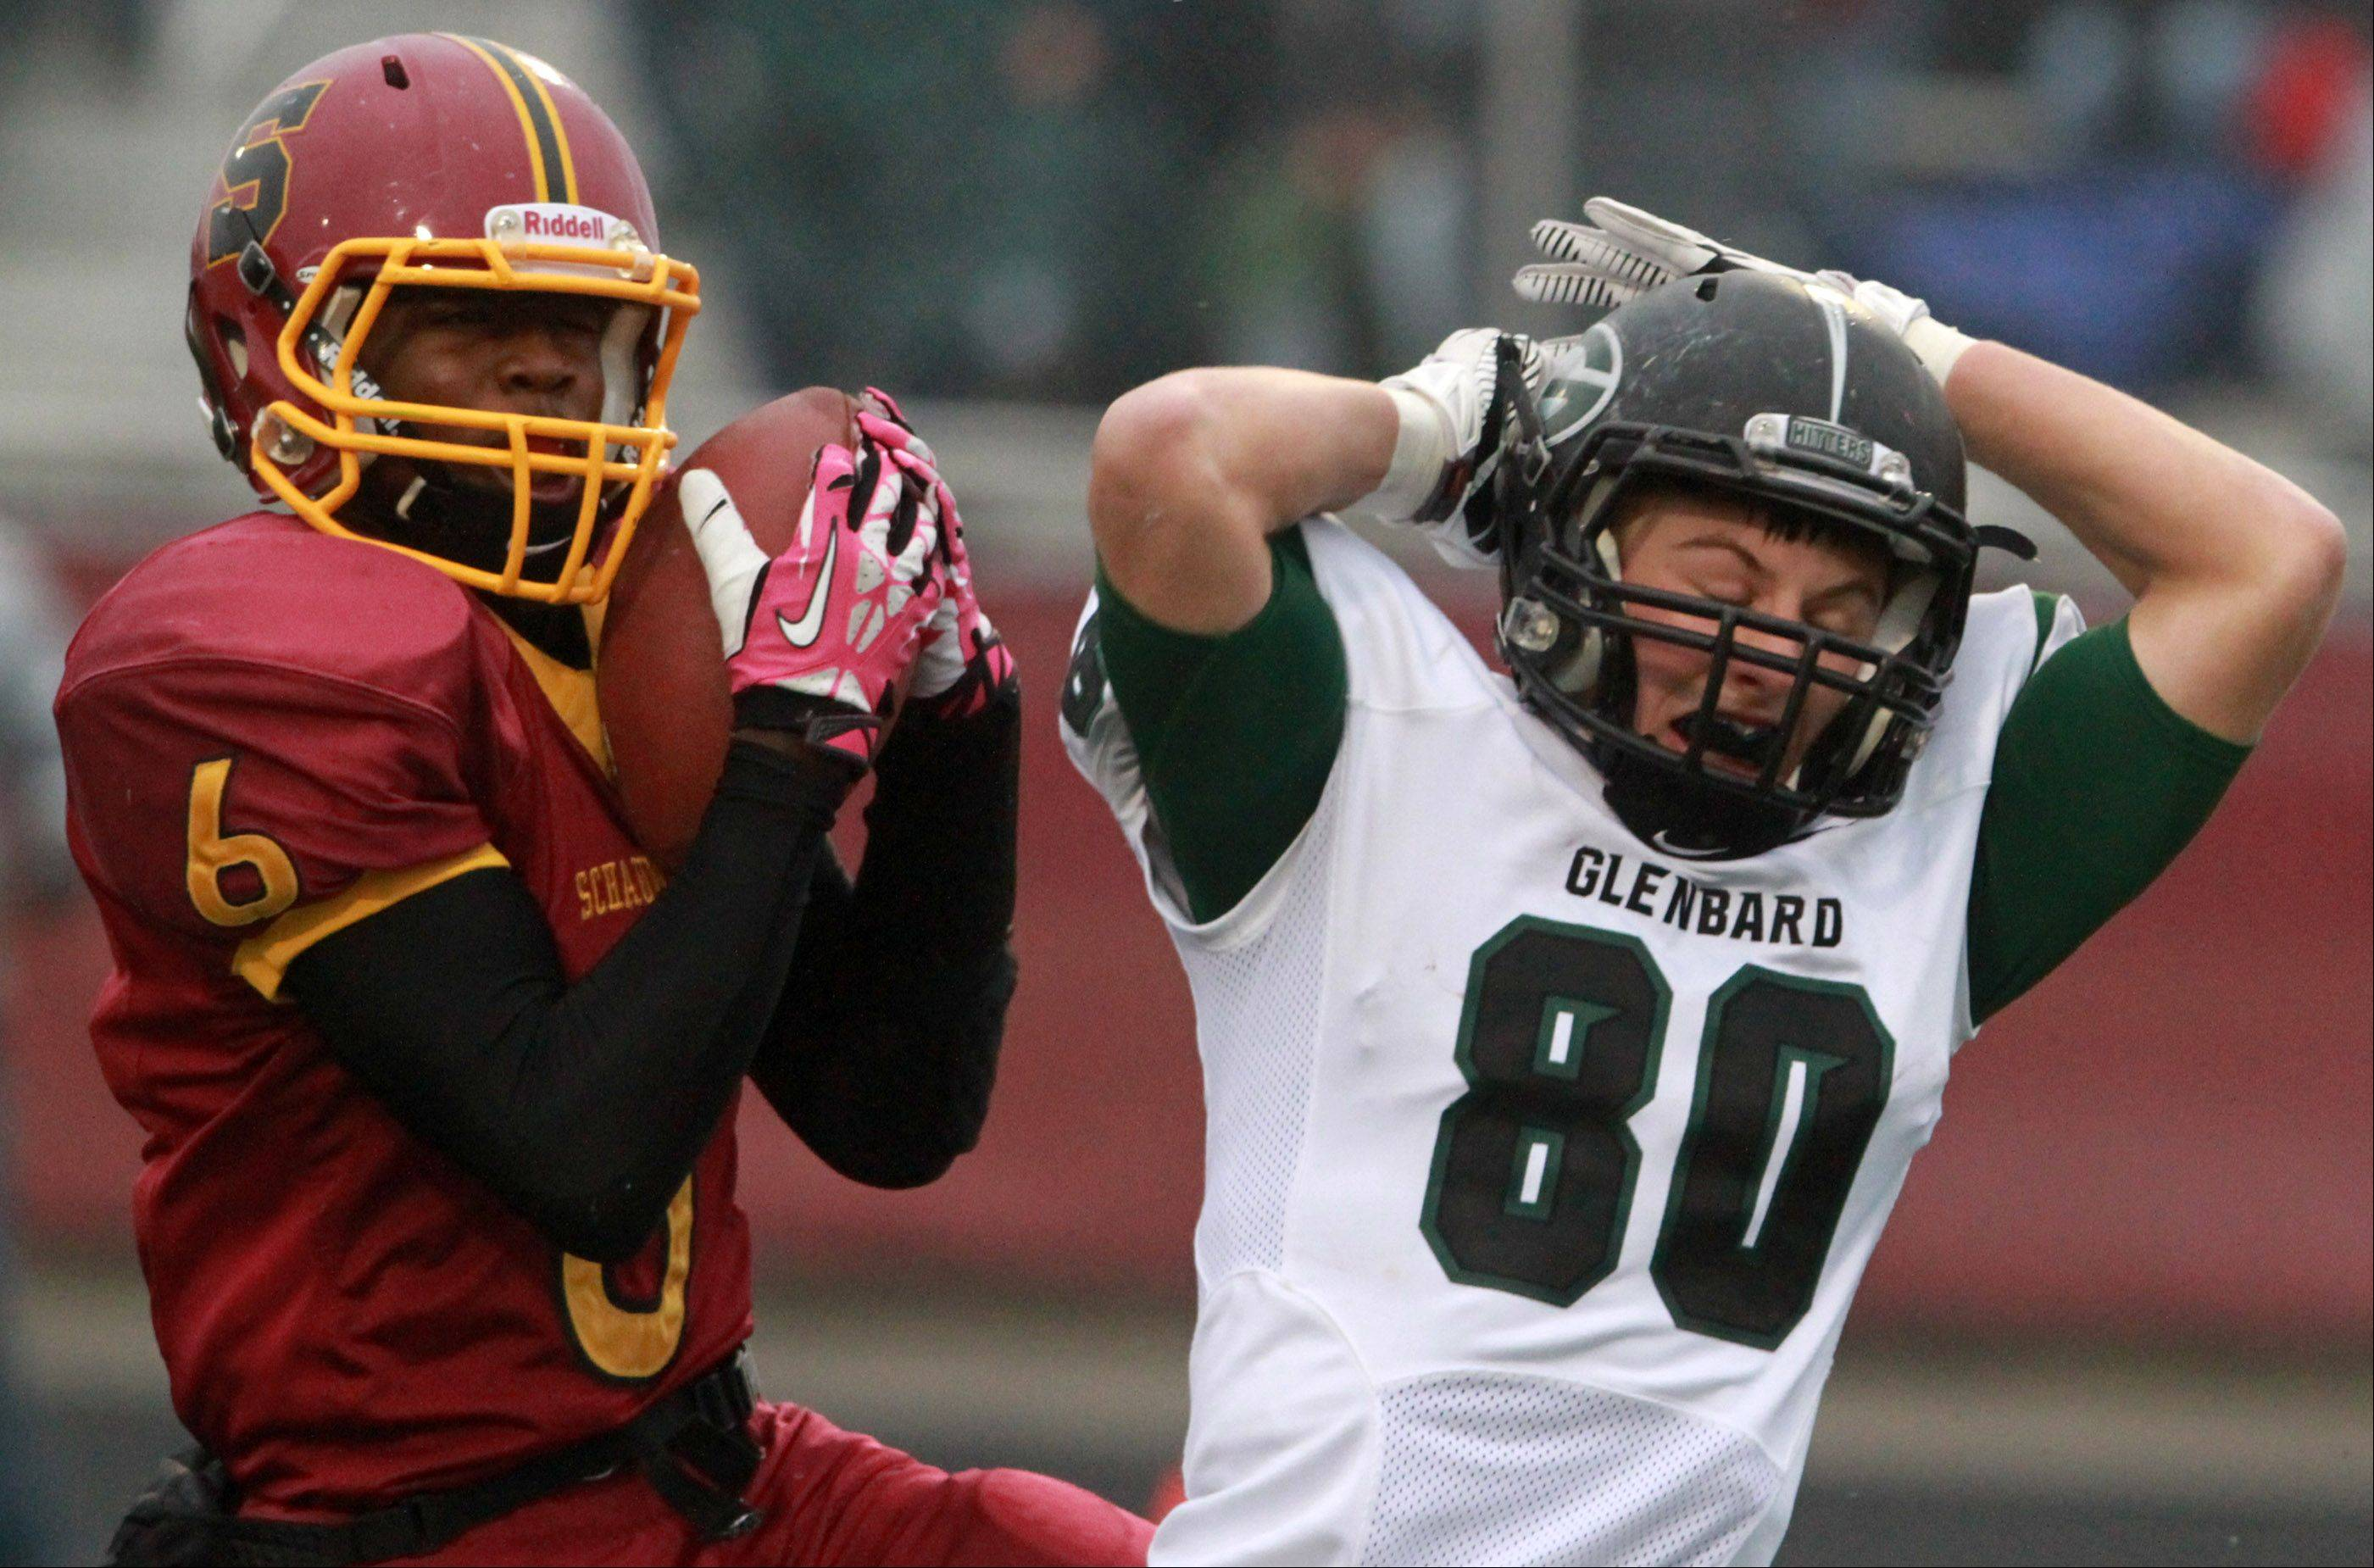 Schaumburg defensive back Shandall Thomas intercepts a pass intended for Glenbard West wide receiver Luke Damask in a quarterfinal playoff game on Saturday in Schaumburg.